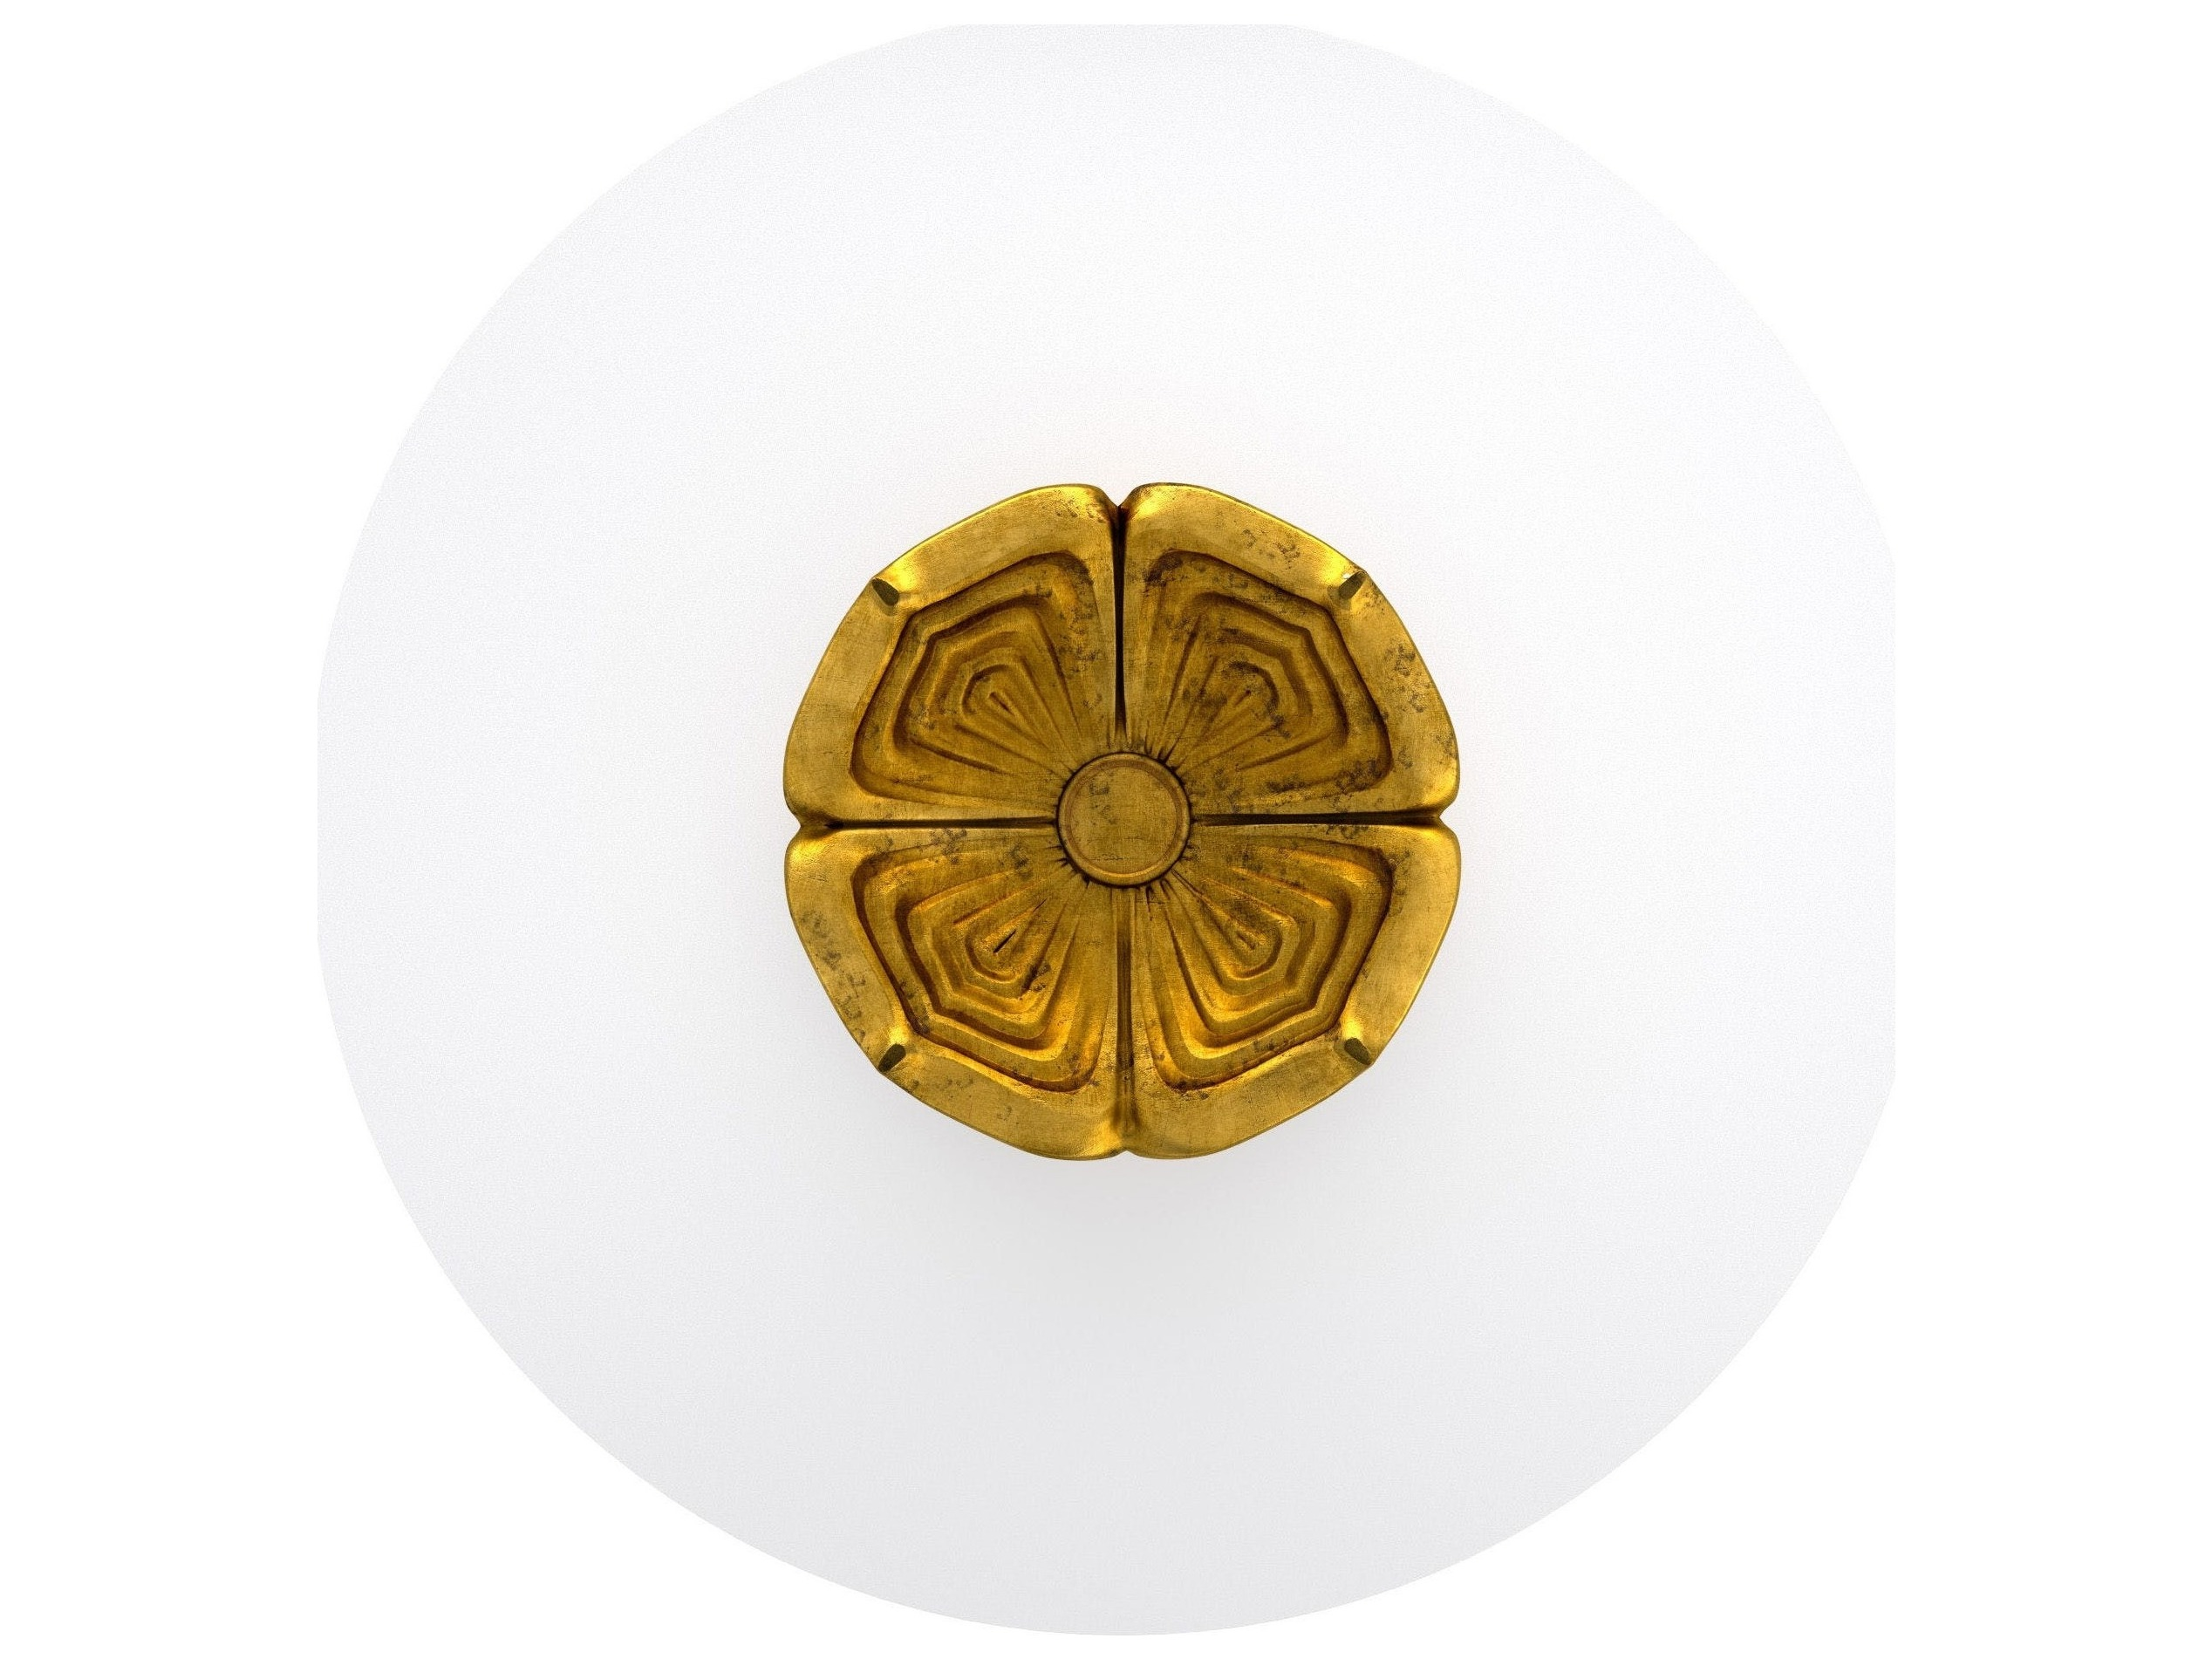 Hooker Furniture Cynthia Rowley Gold 54 Wide Round